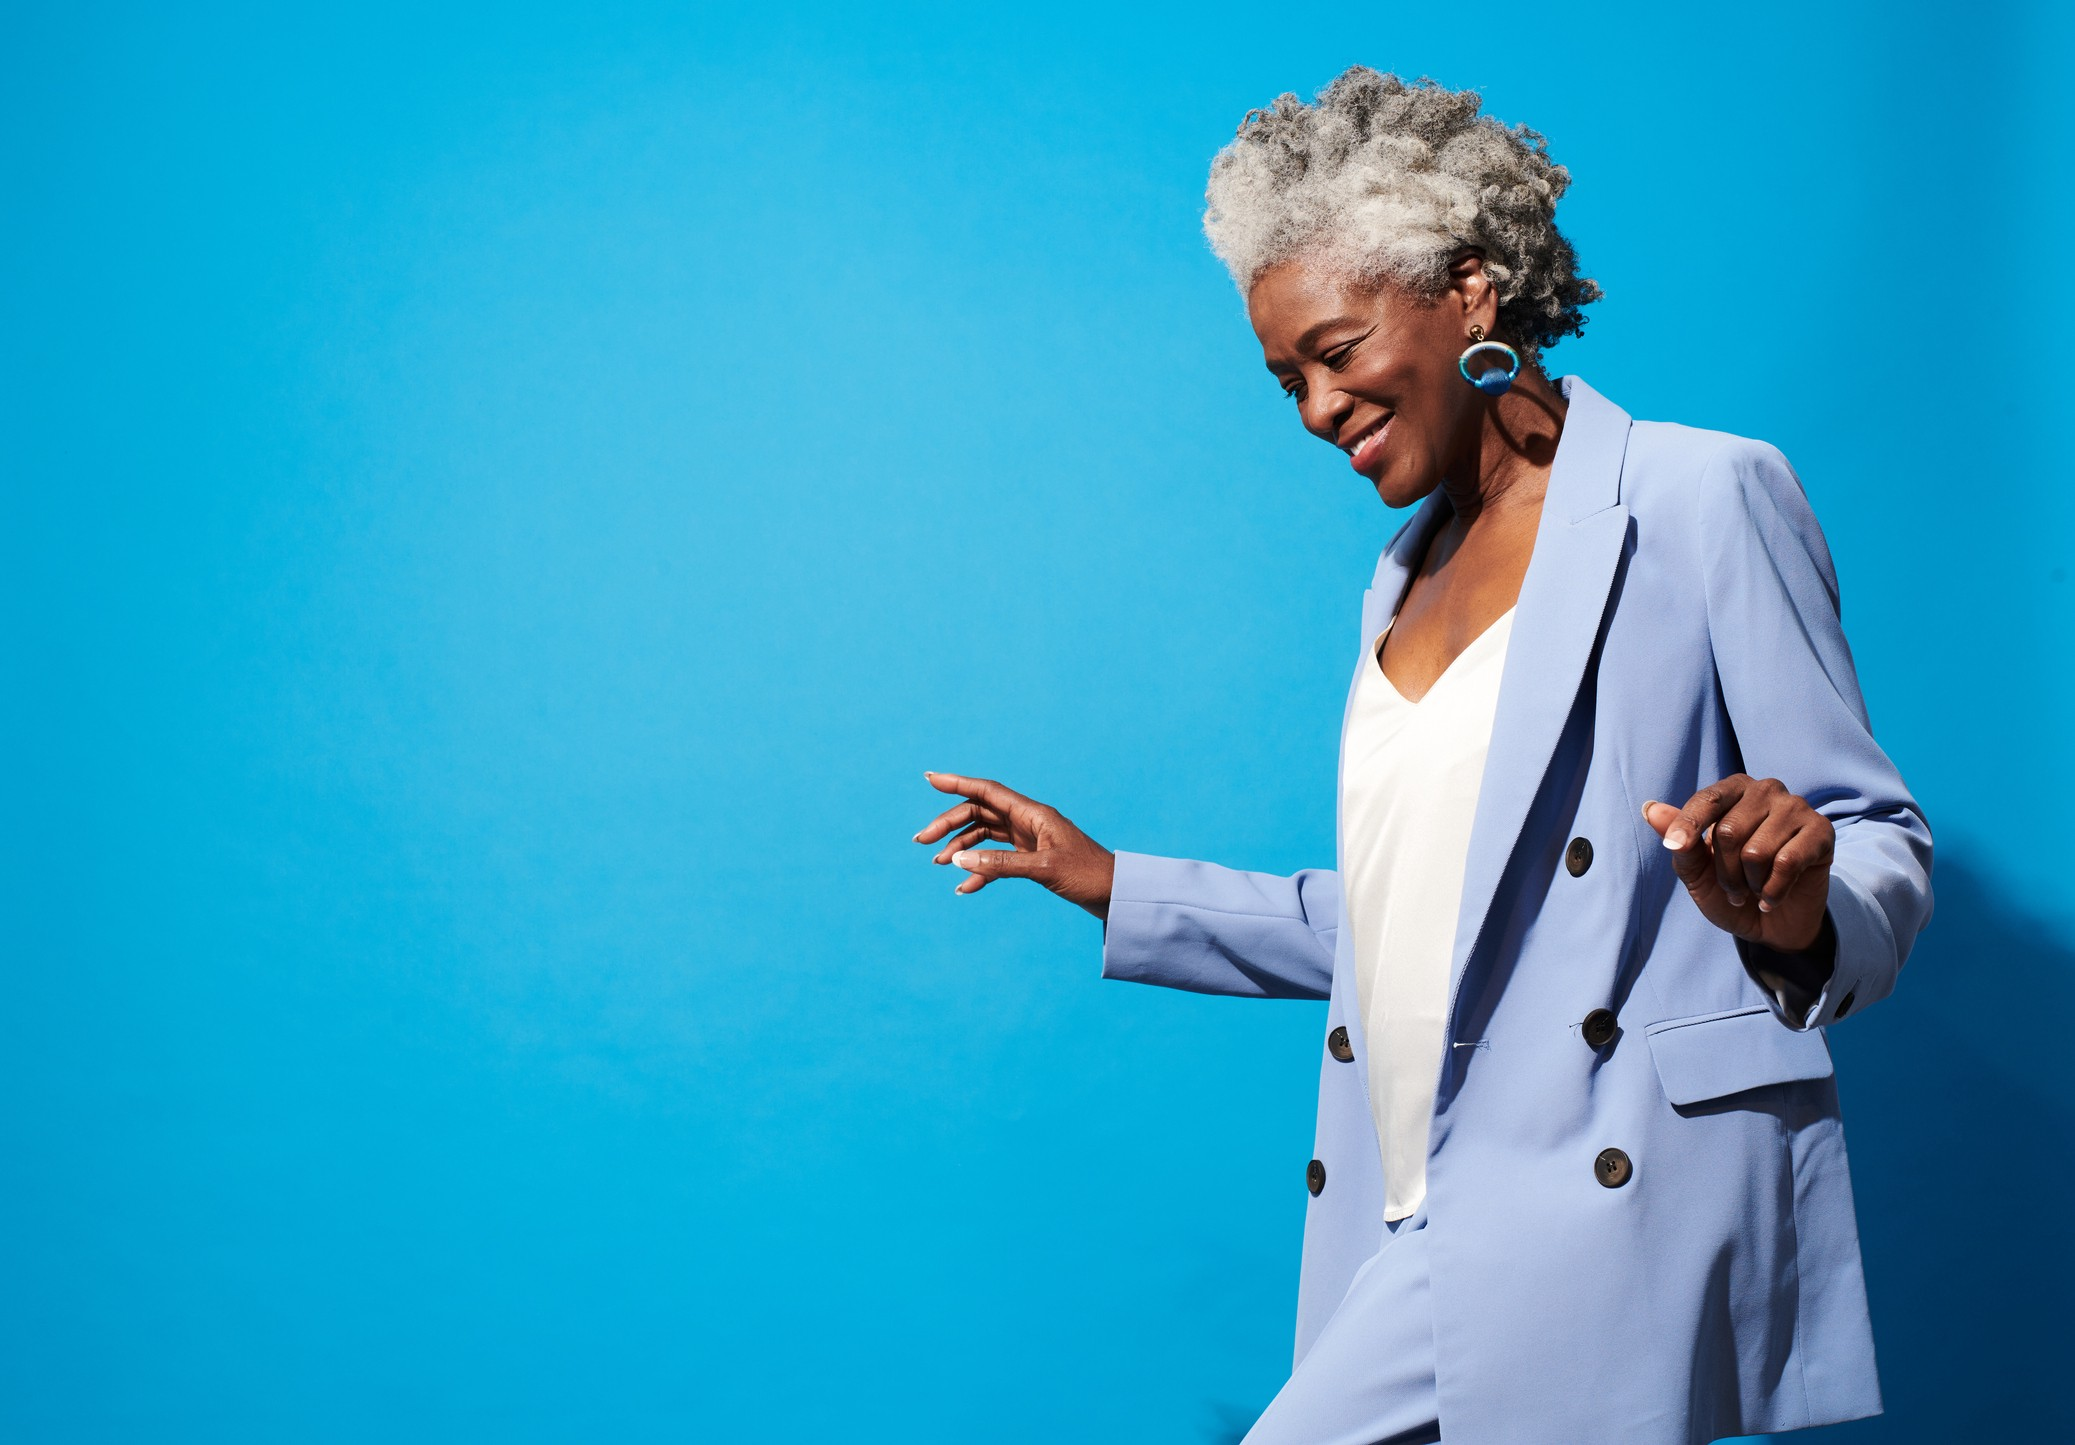 Confident, smiling older Black woman in a powder blue suit against a sky blue background.